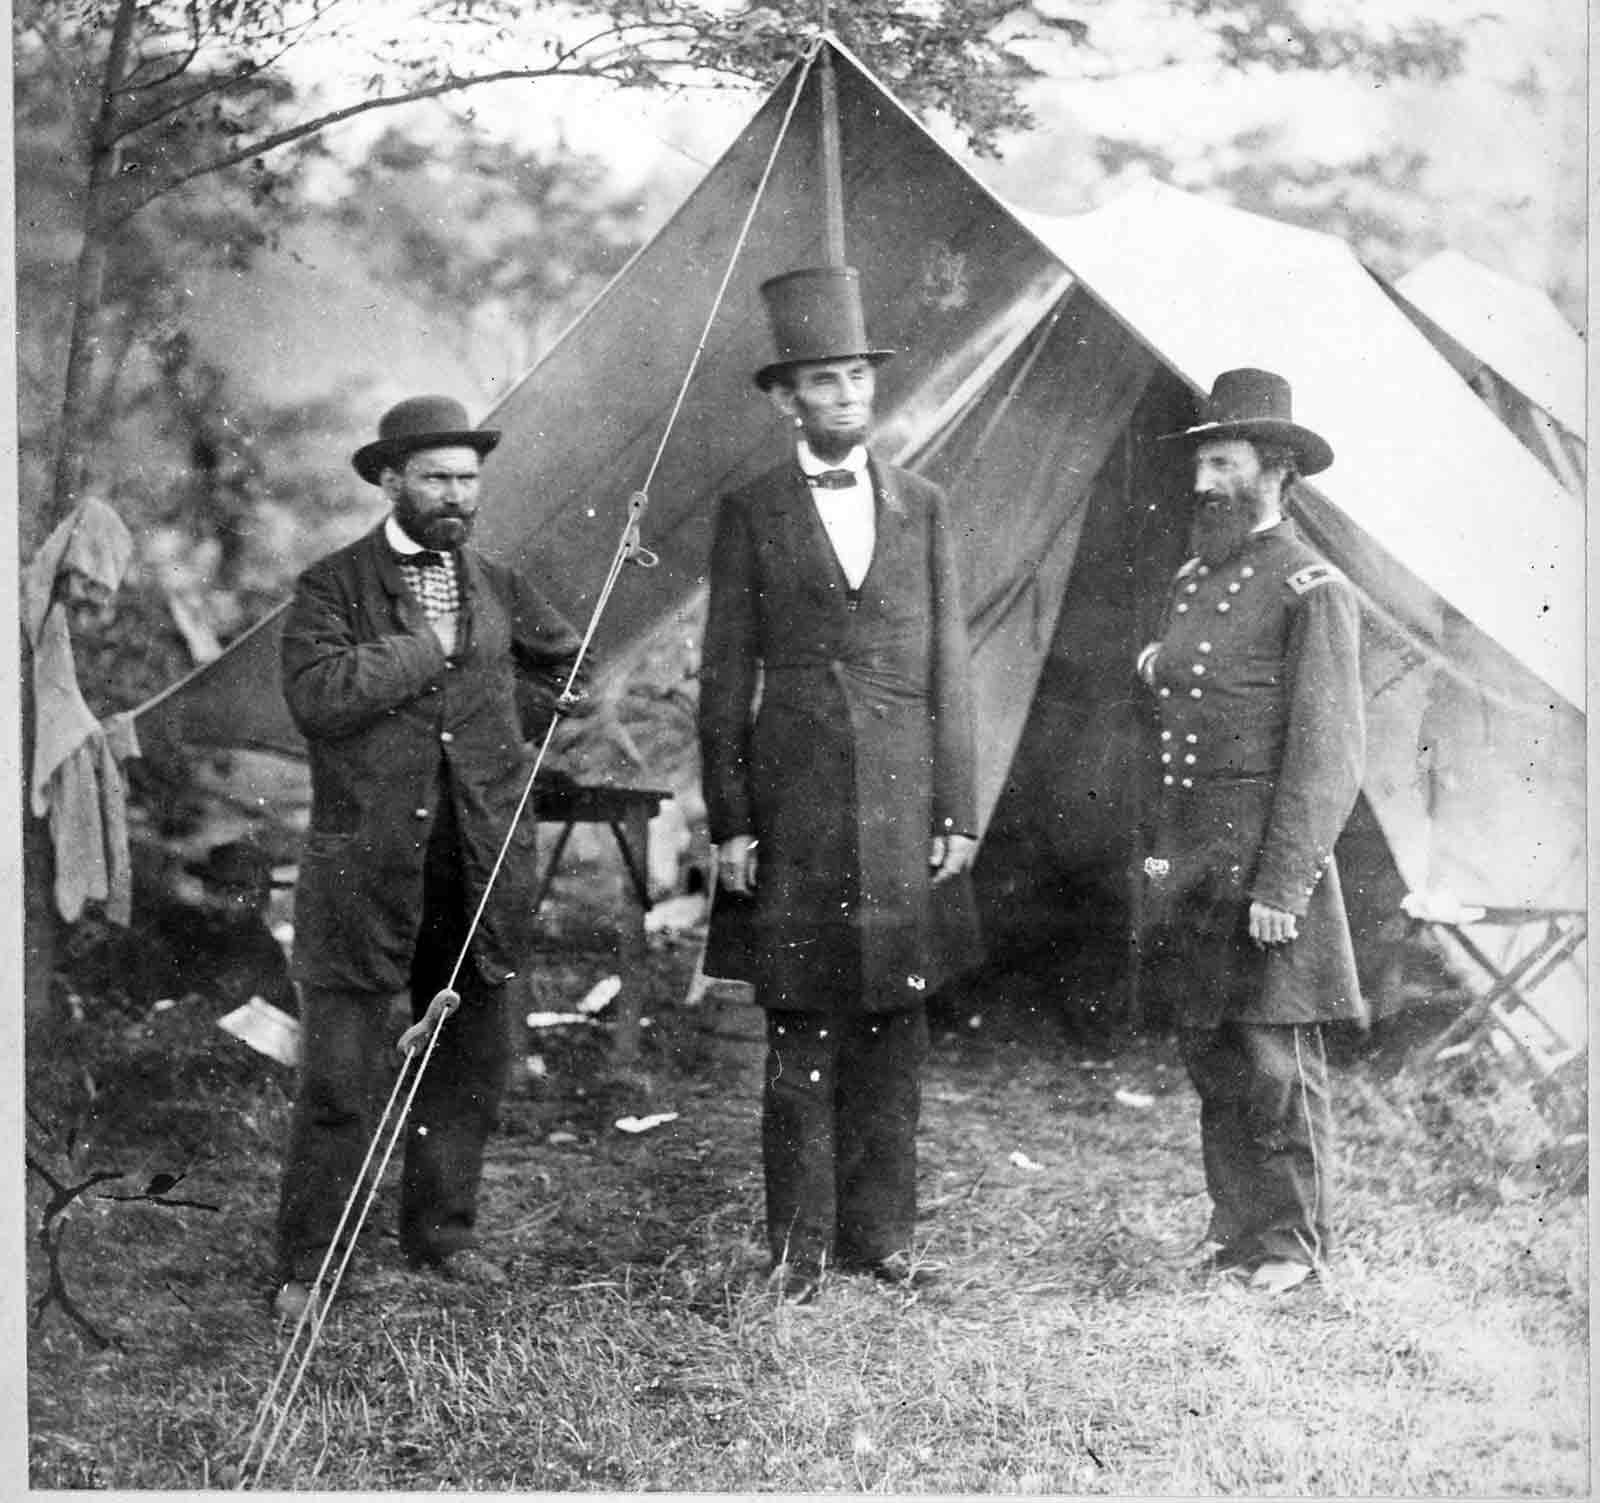 Account of the presidency of abraham lincoln